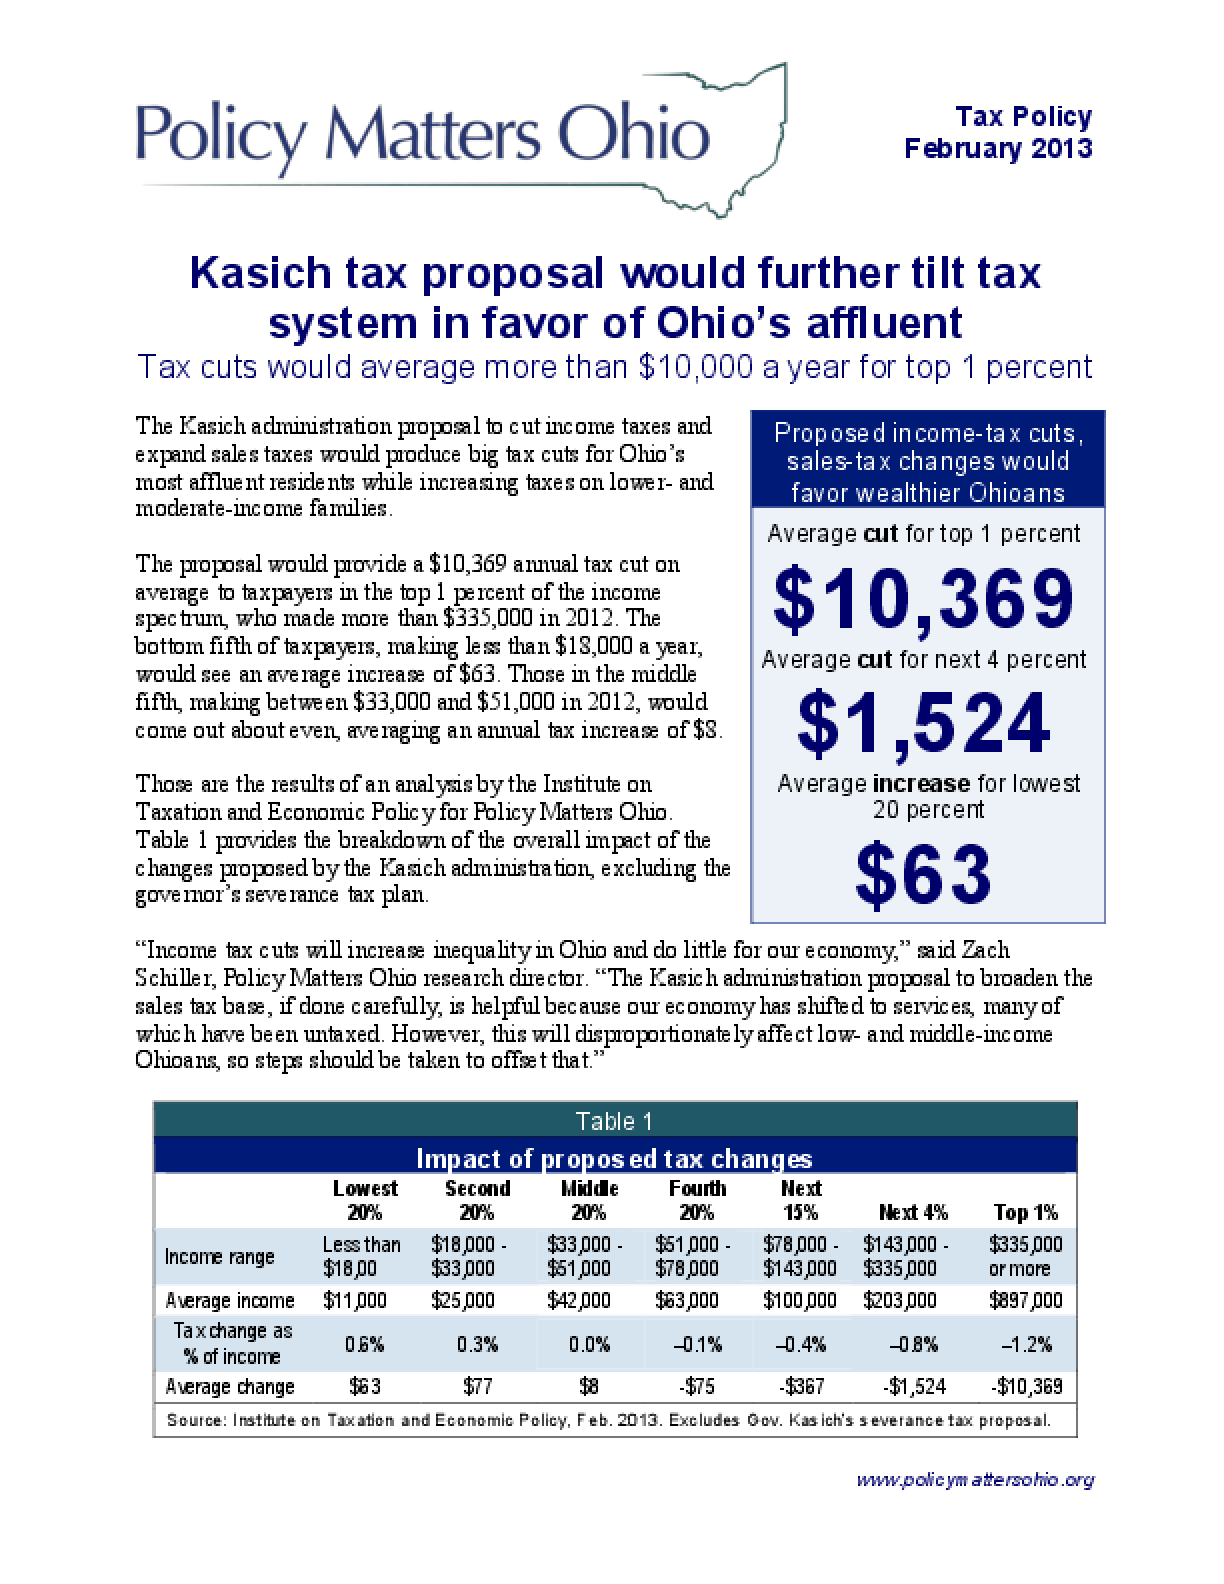 Kasich Tax Proposal Would Further Tilt Tax System in Favor of Ohio's Affluent